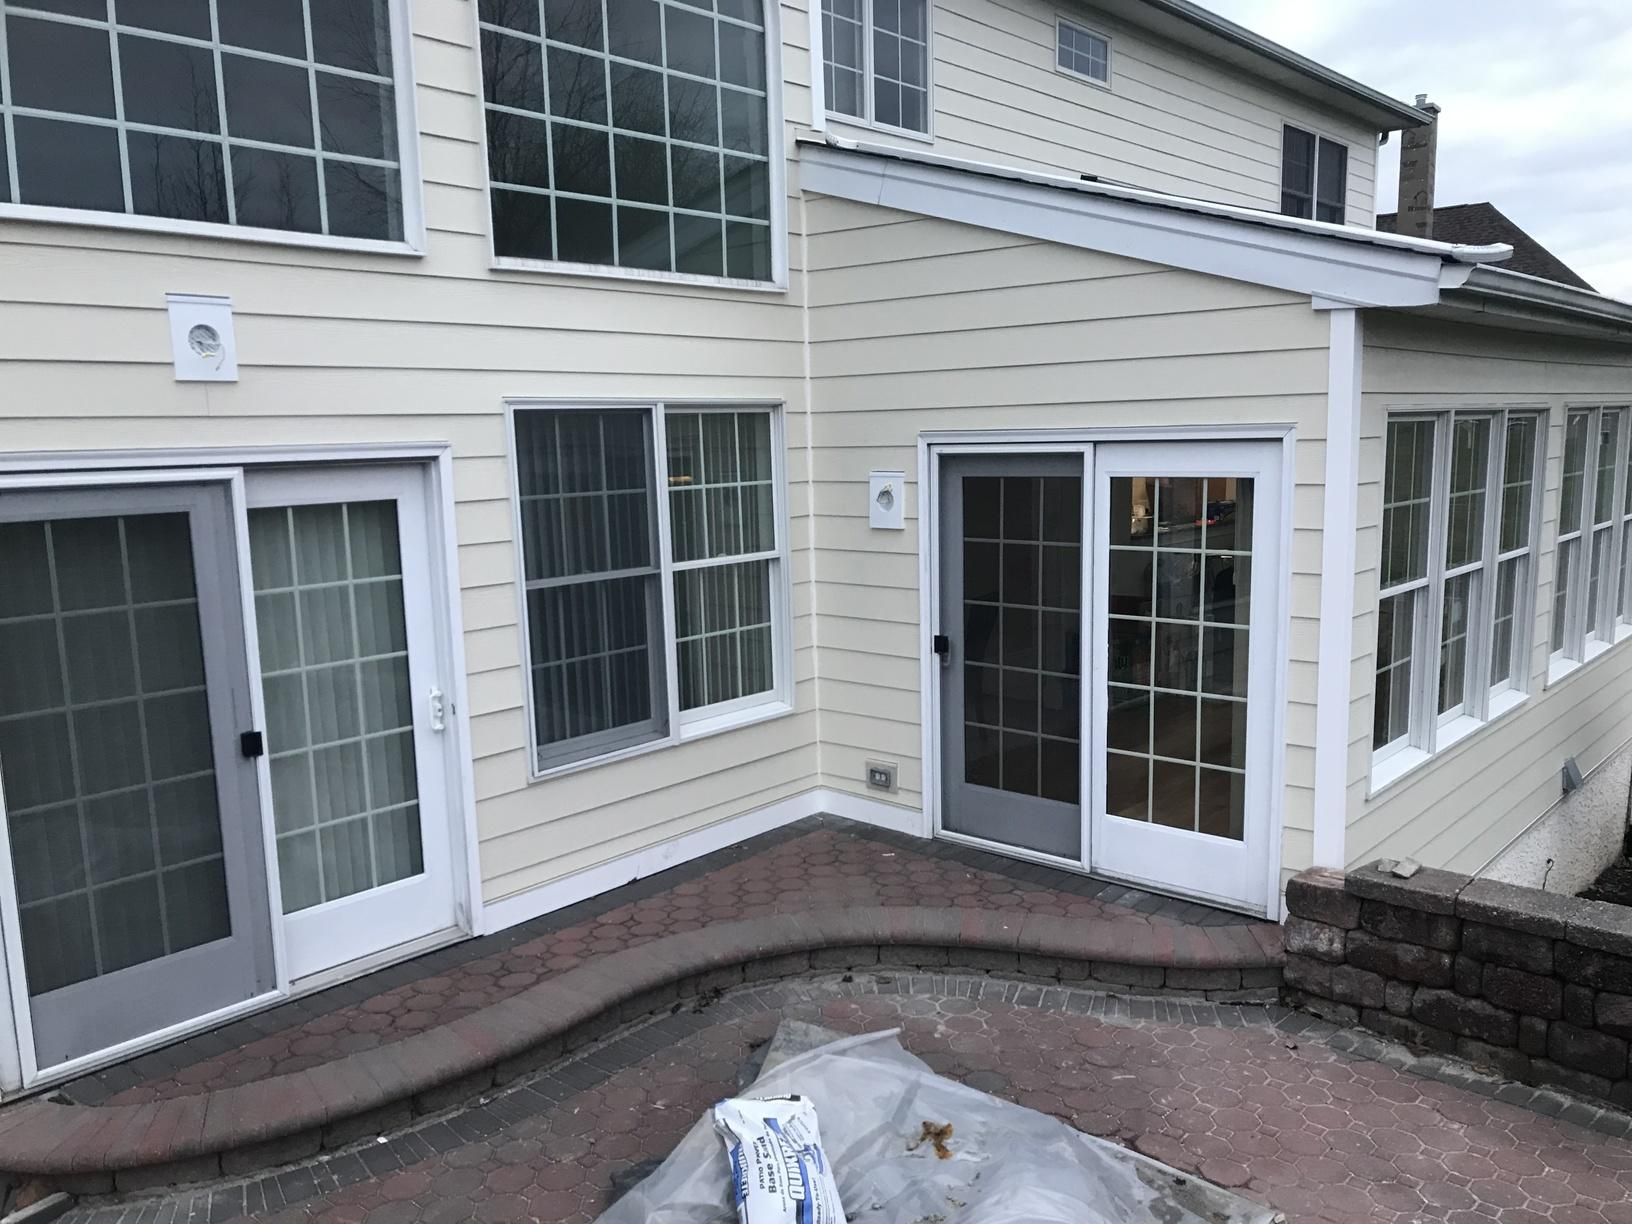 Replacing Outdated Stucco with Fiber Cement Planks in Hockessin, DE - After Photo